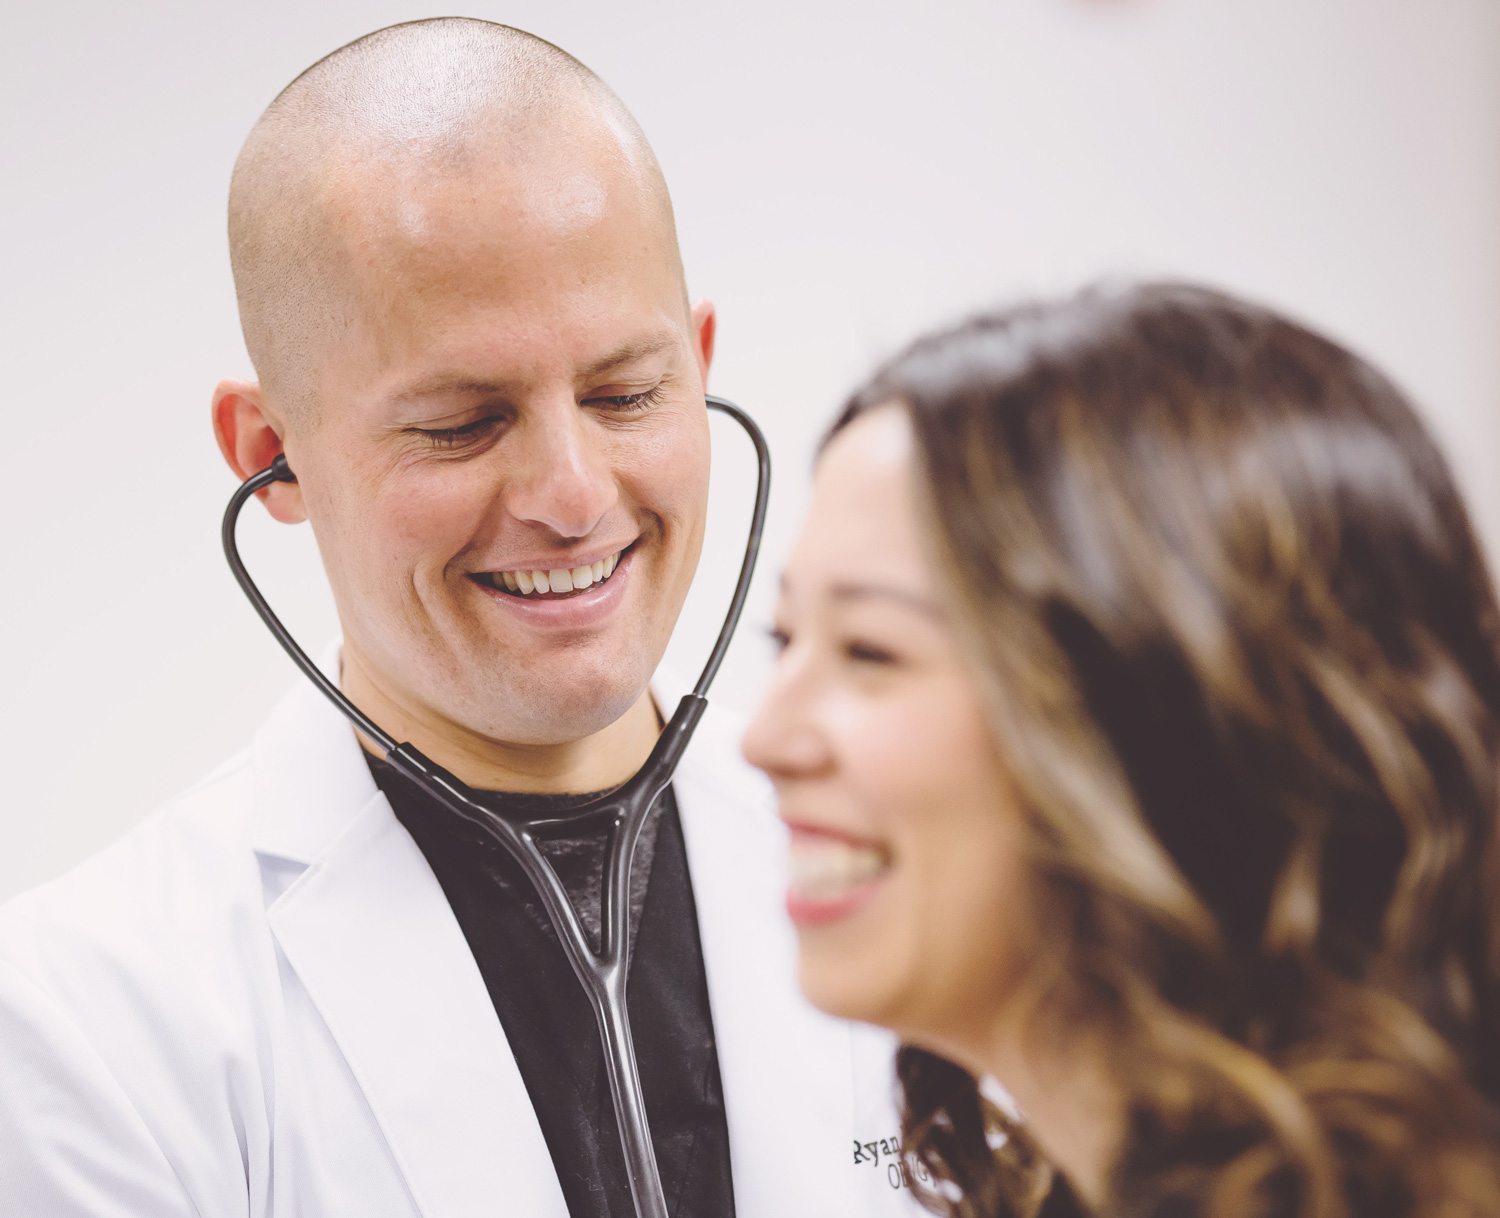 Dr. Ryan Rasmussen, OB/GYN, listens to woman's heart with stethoscope.